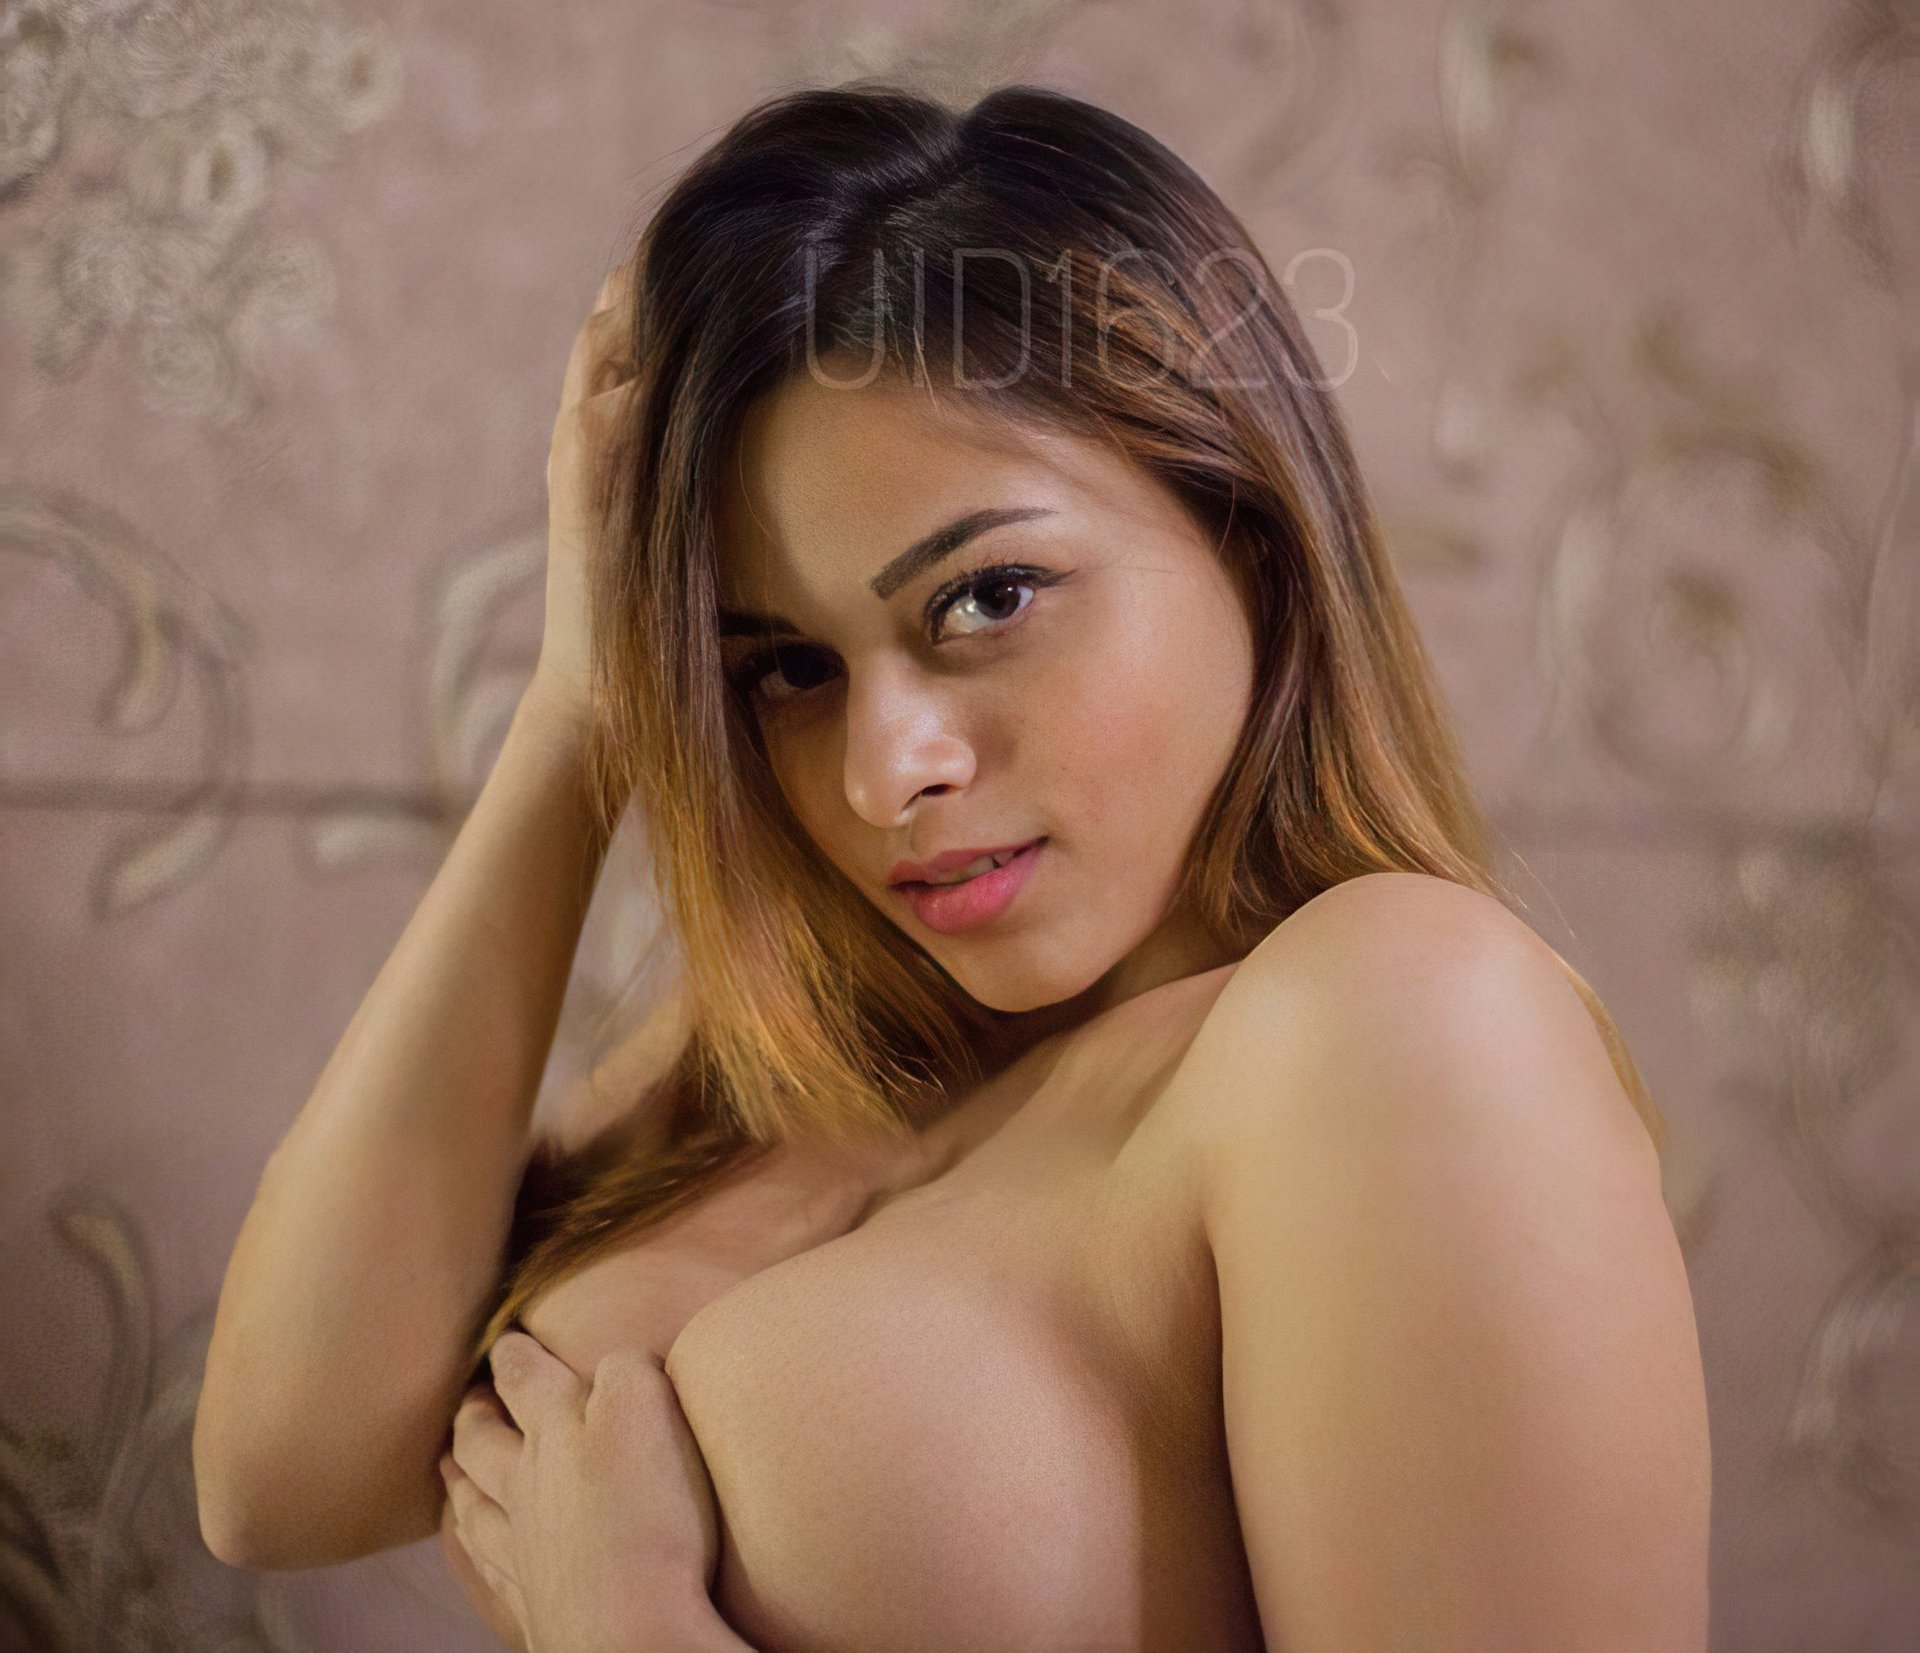 Ashwitha Ashwitha4real Onlyfans Nude Leaks 0011